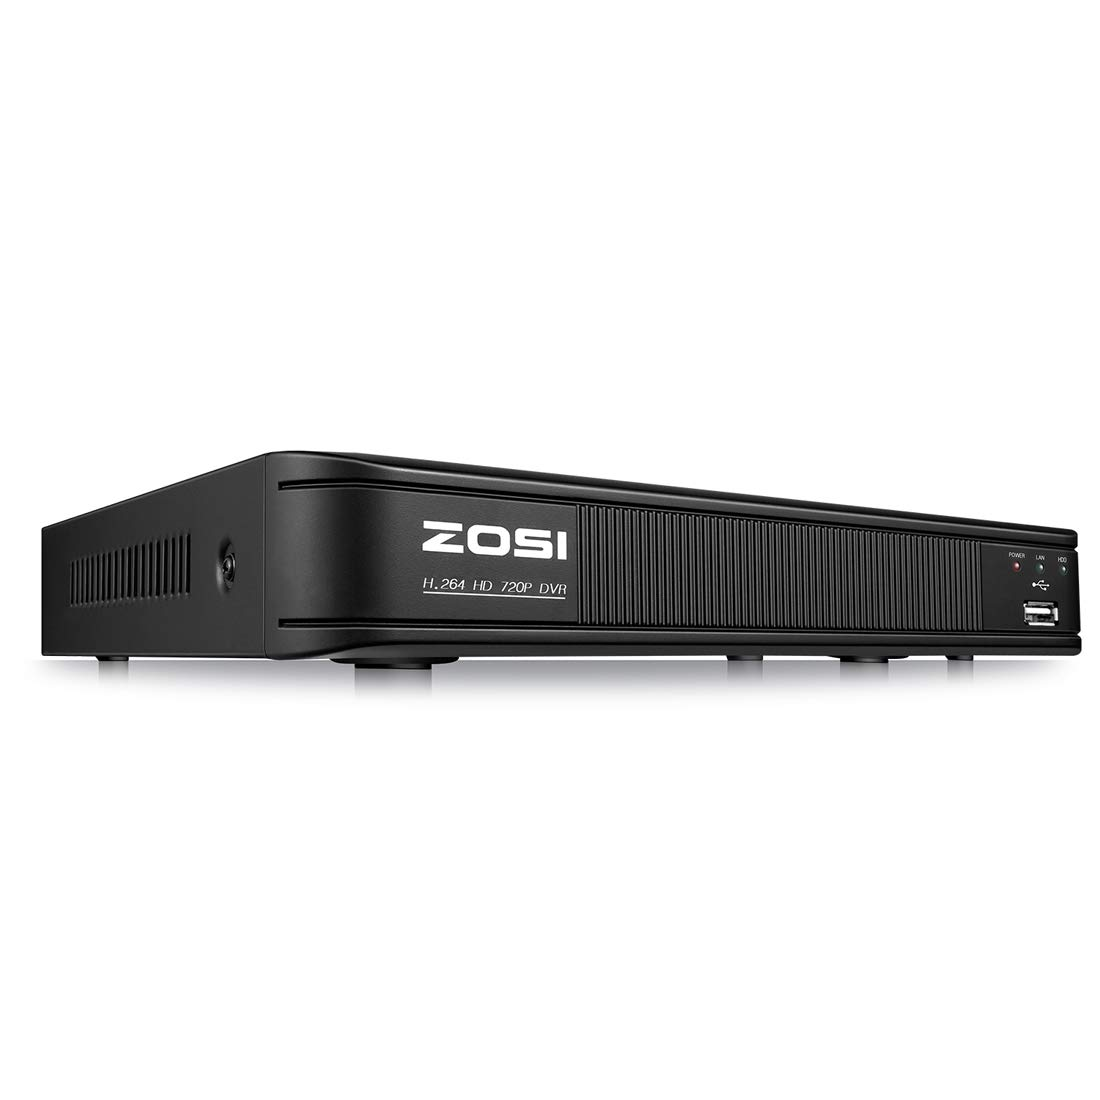 ZOSI 8 Channel 720P 1080N HD-TVI Security DVR Recorder HD Hybrid Capability 4-in-1(Analog/AHD/TVI/CVI) Surveillance System,Motion Detection,Remote Control,Email Alarm,No Hard Drive by ZOSI